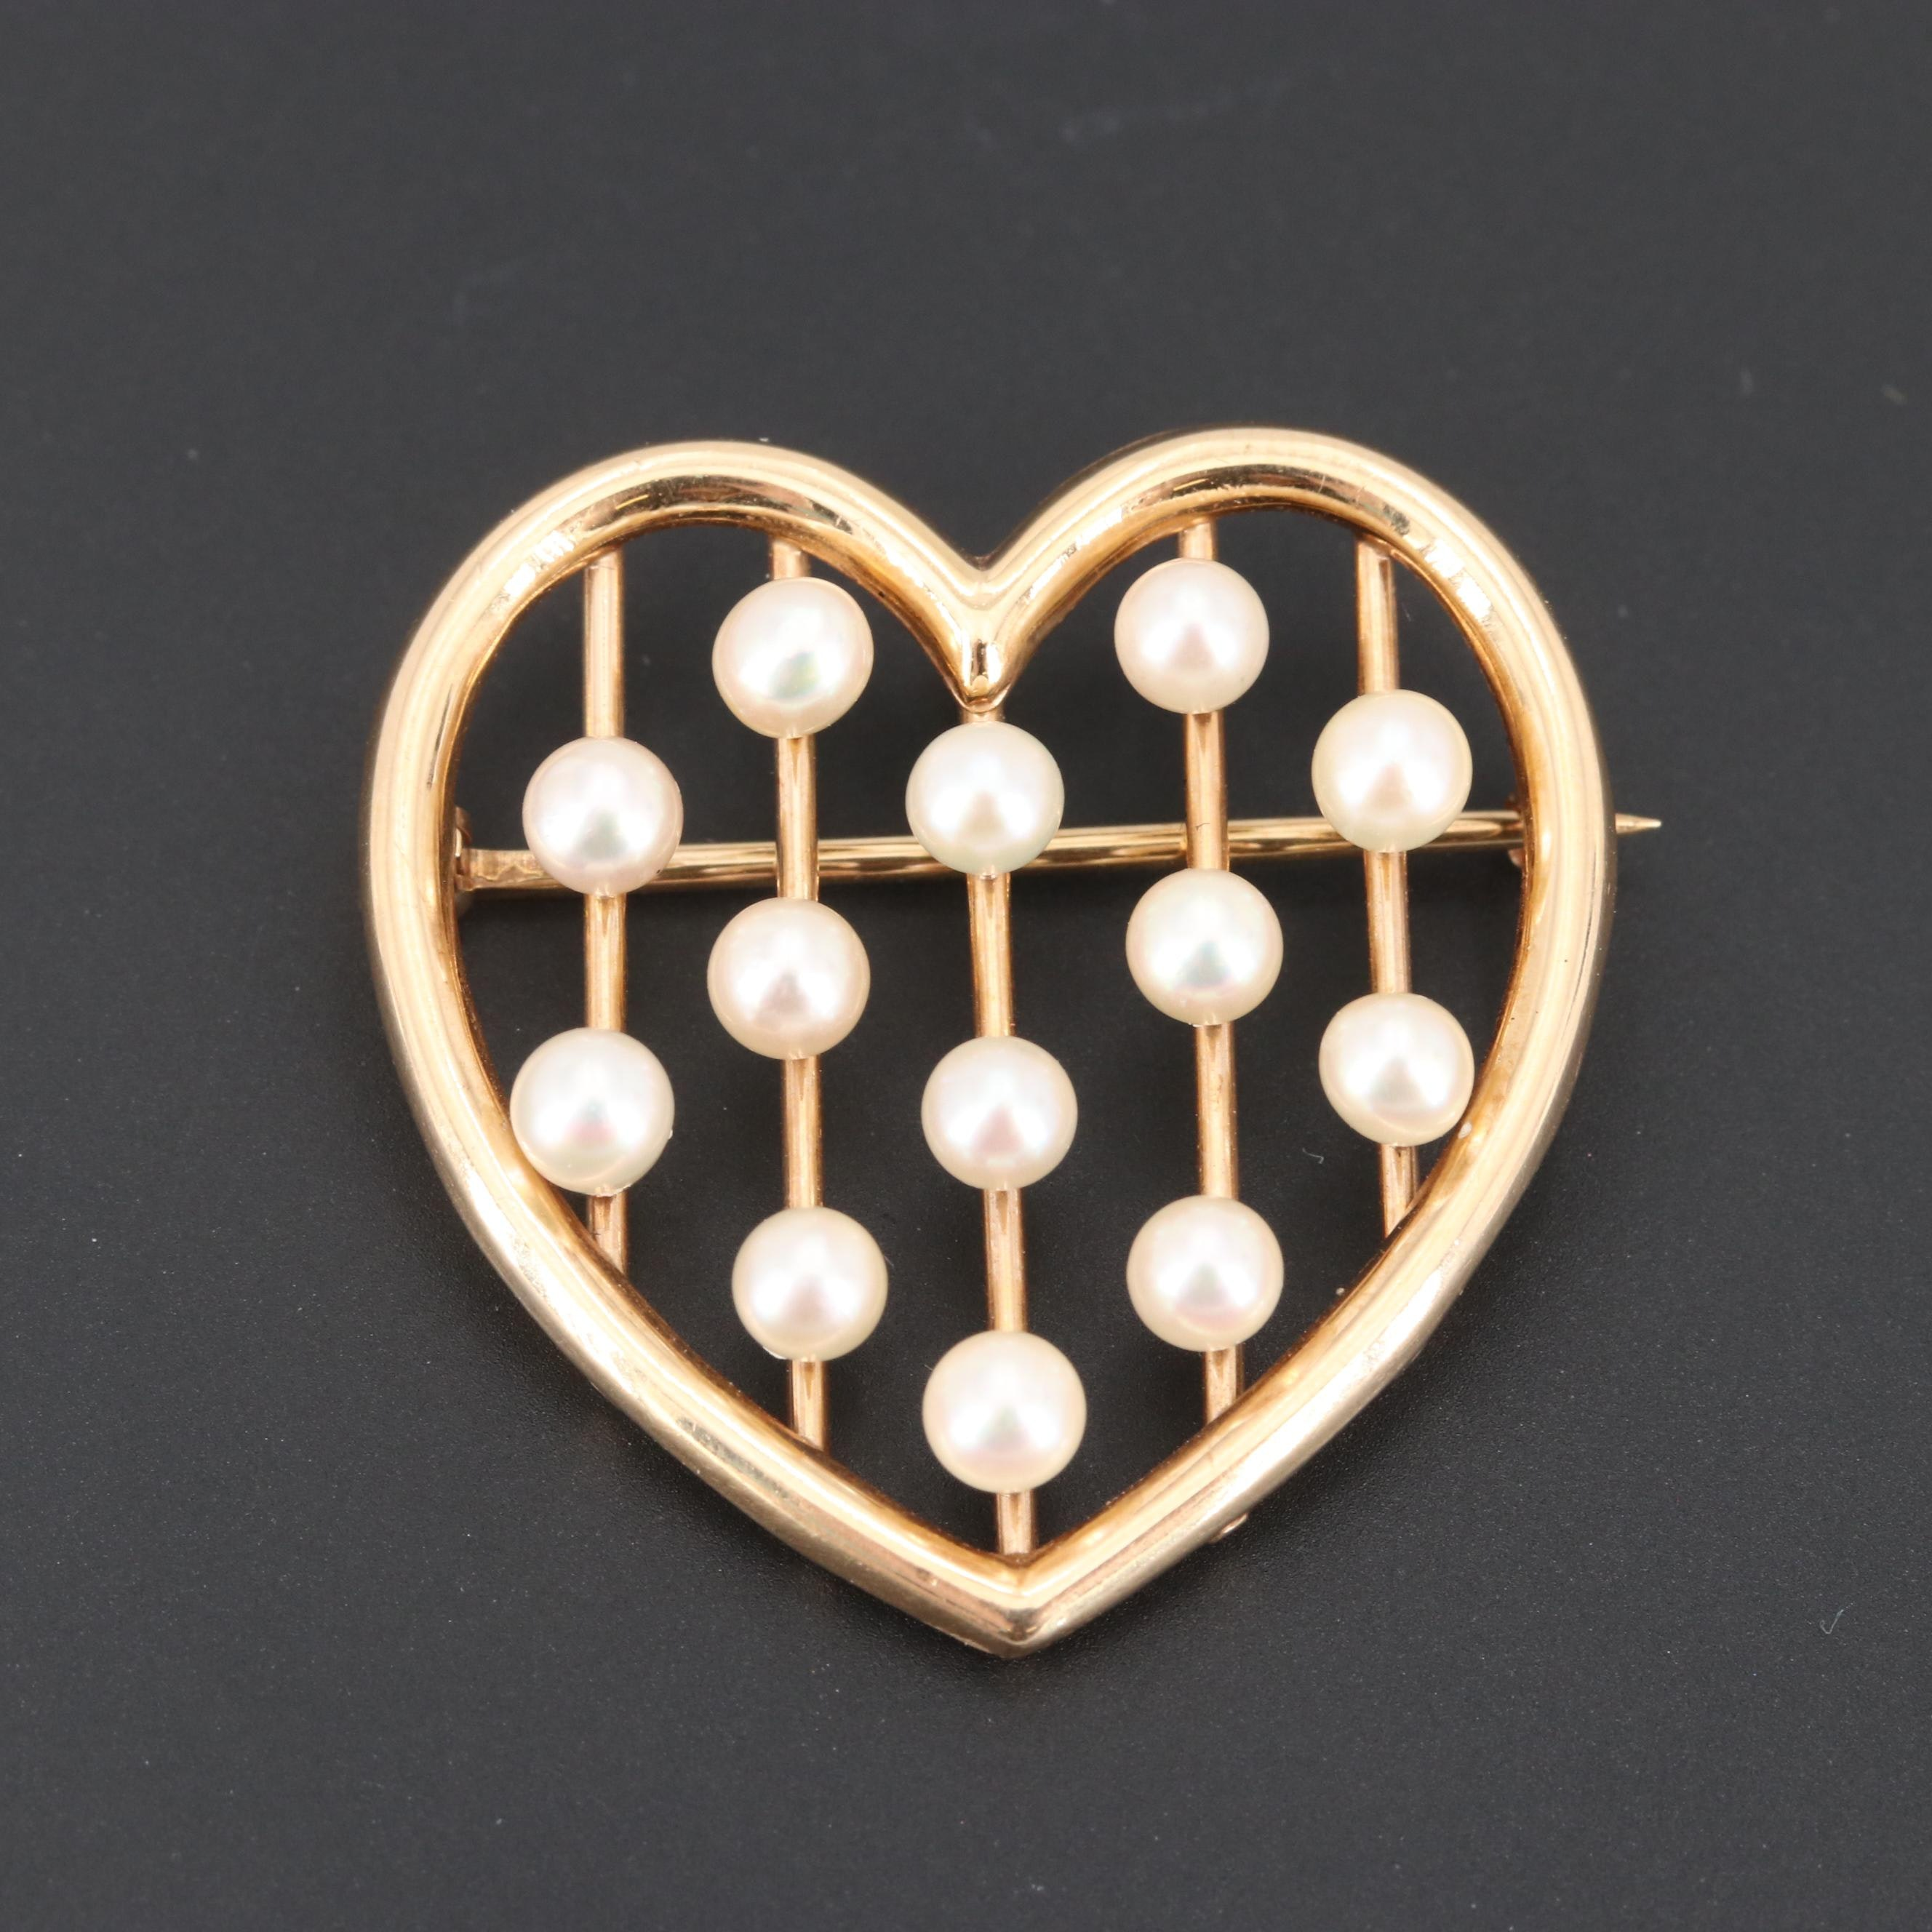 Vintage Krementz 14K Yellow Gold Cultured Pearl Heart Converter Brooch